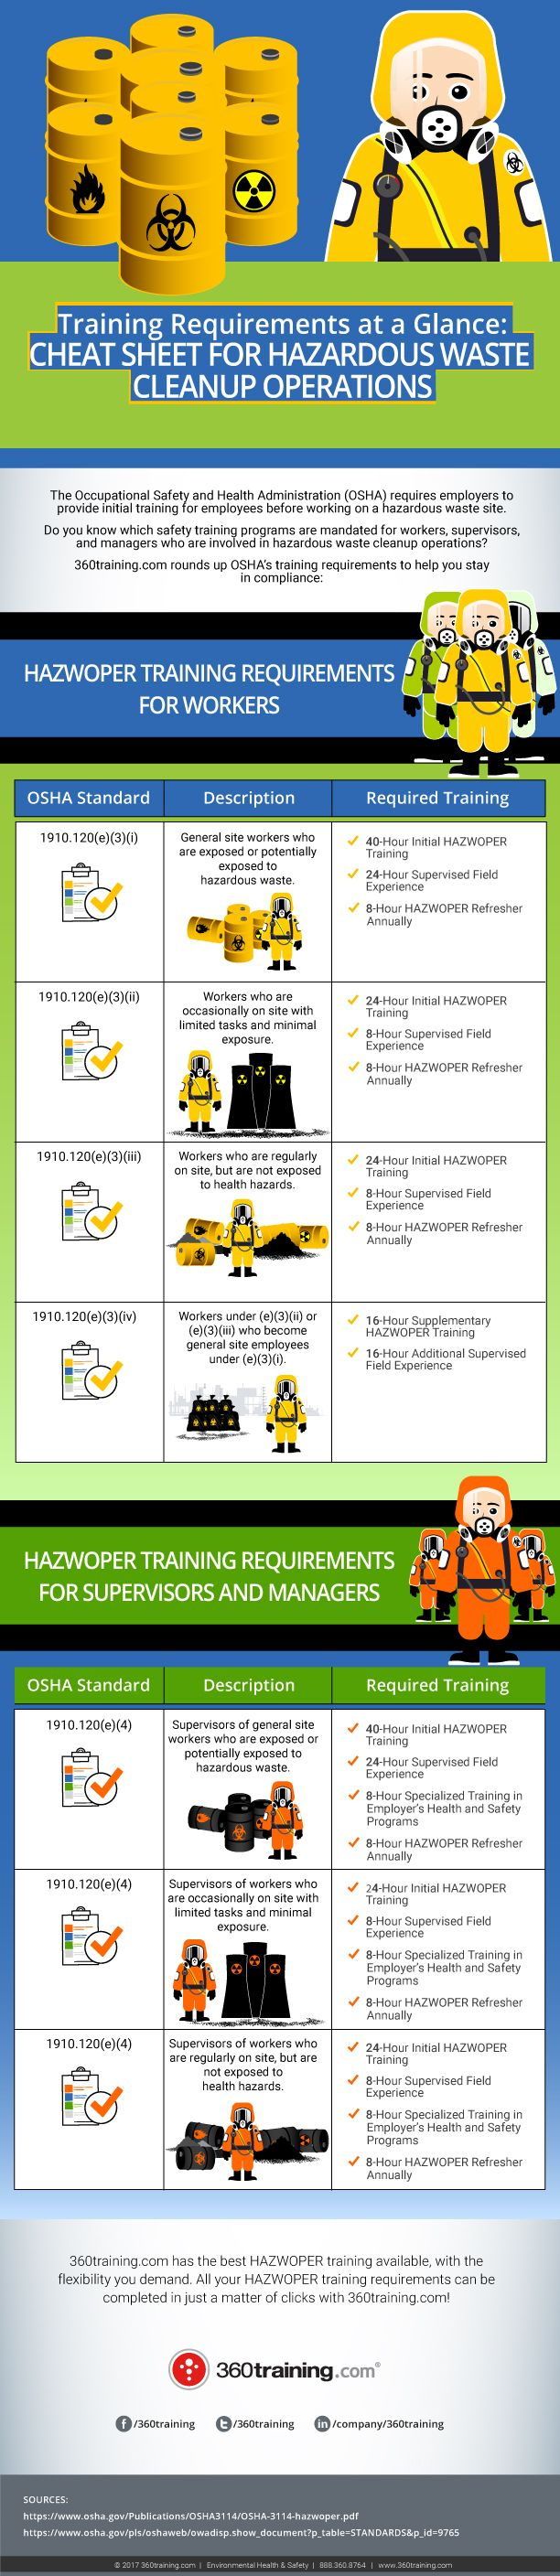 UST Laws and Regulations Infographic